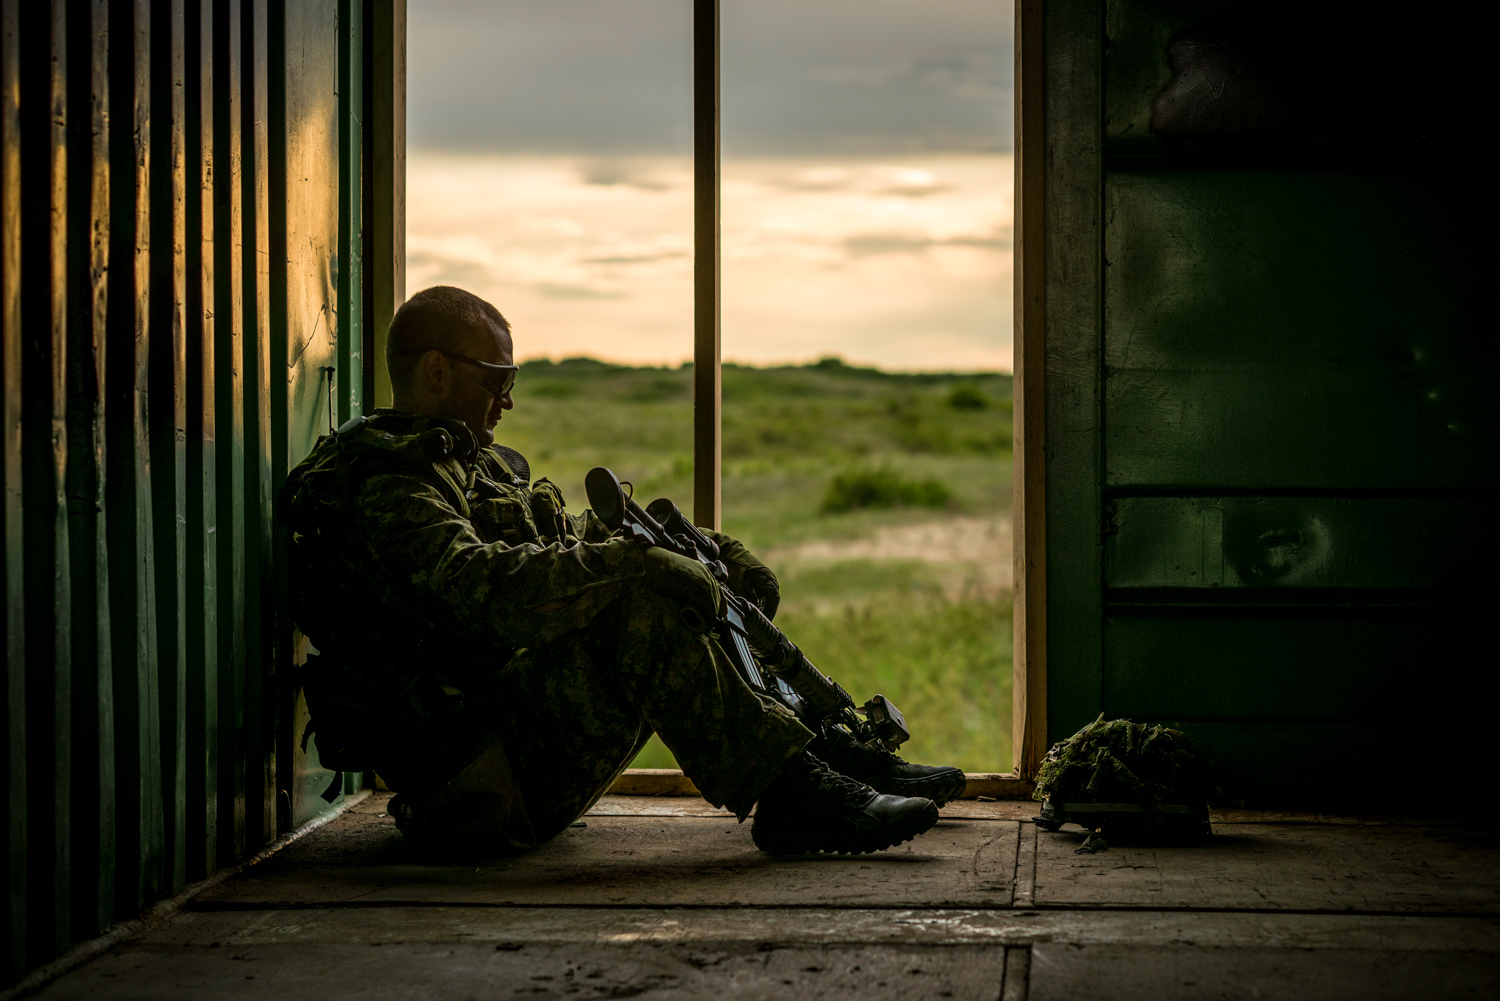 A member of the Canadian Armed Forces relaxes for a moment during exercise Maple Resolve in Edmonton, Alberta